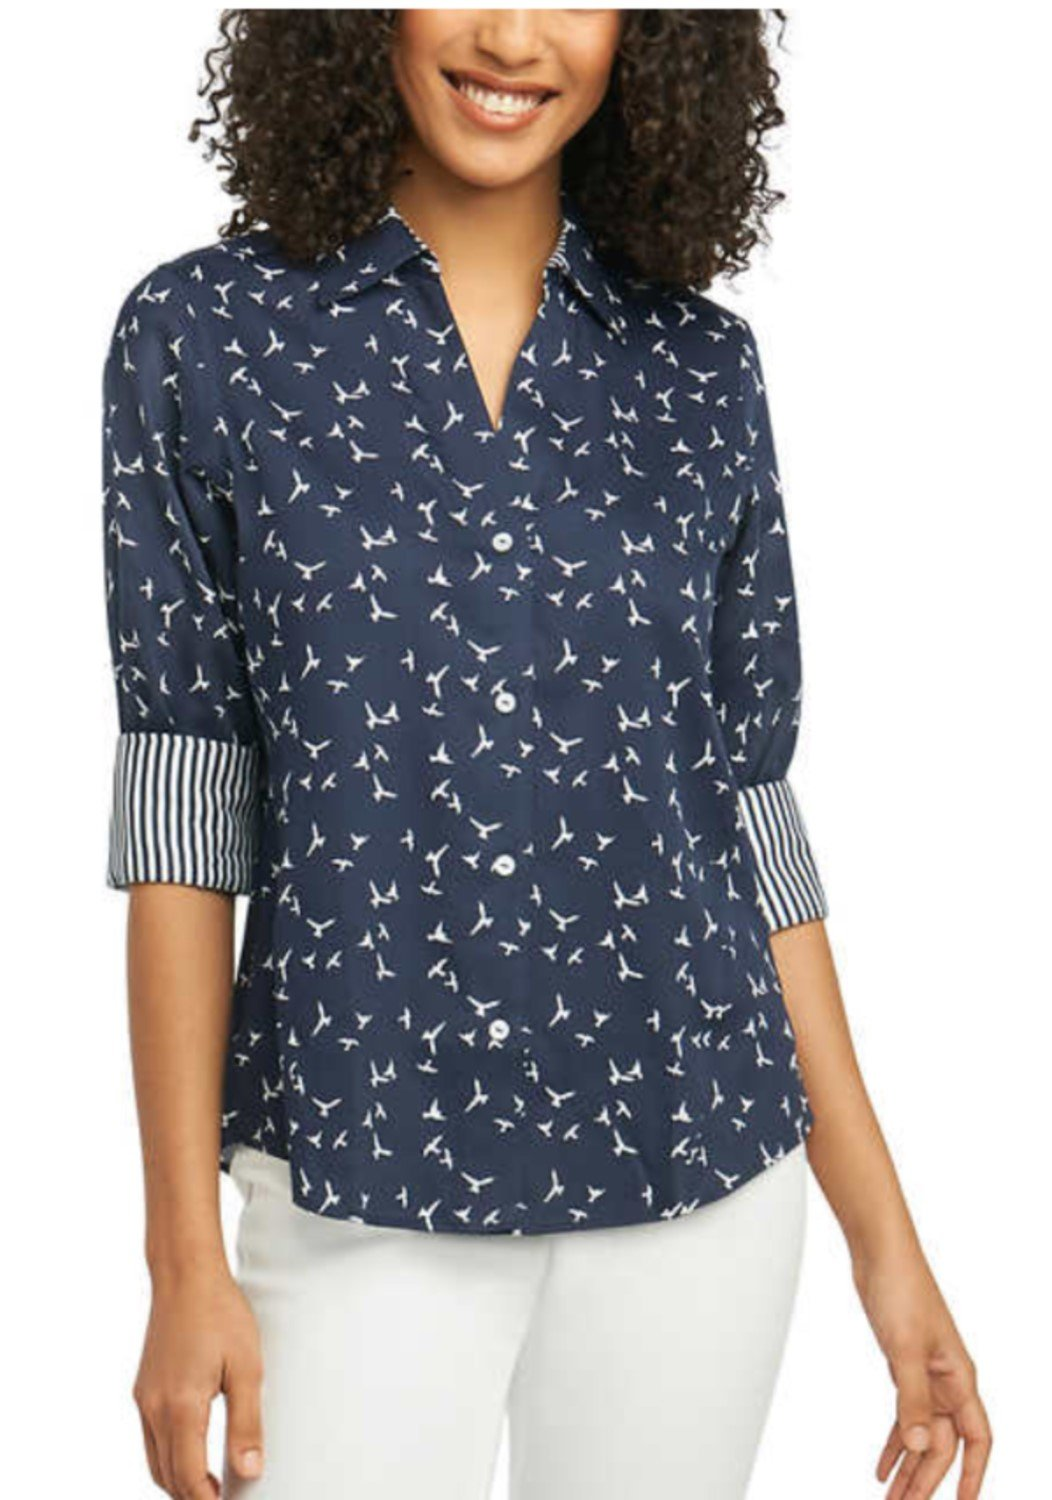 f9052ccca2f943 Womens Navy Blue Oxford Shirt – EDGE Engineering and Consulting Limited